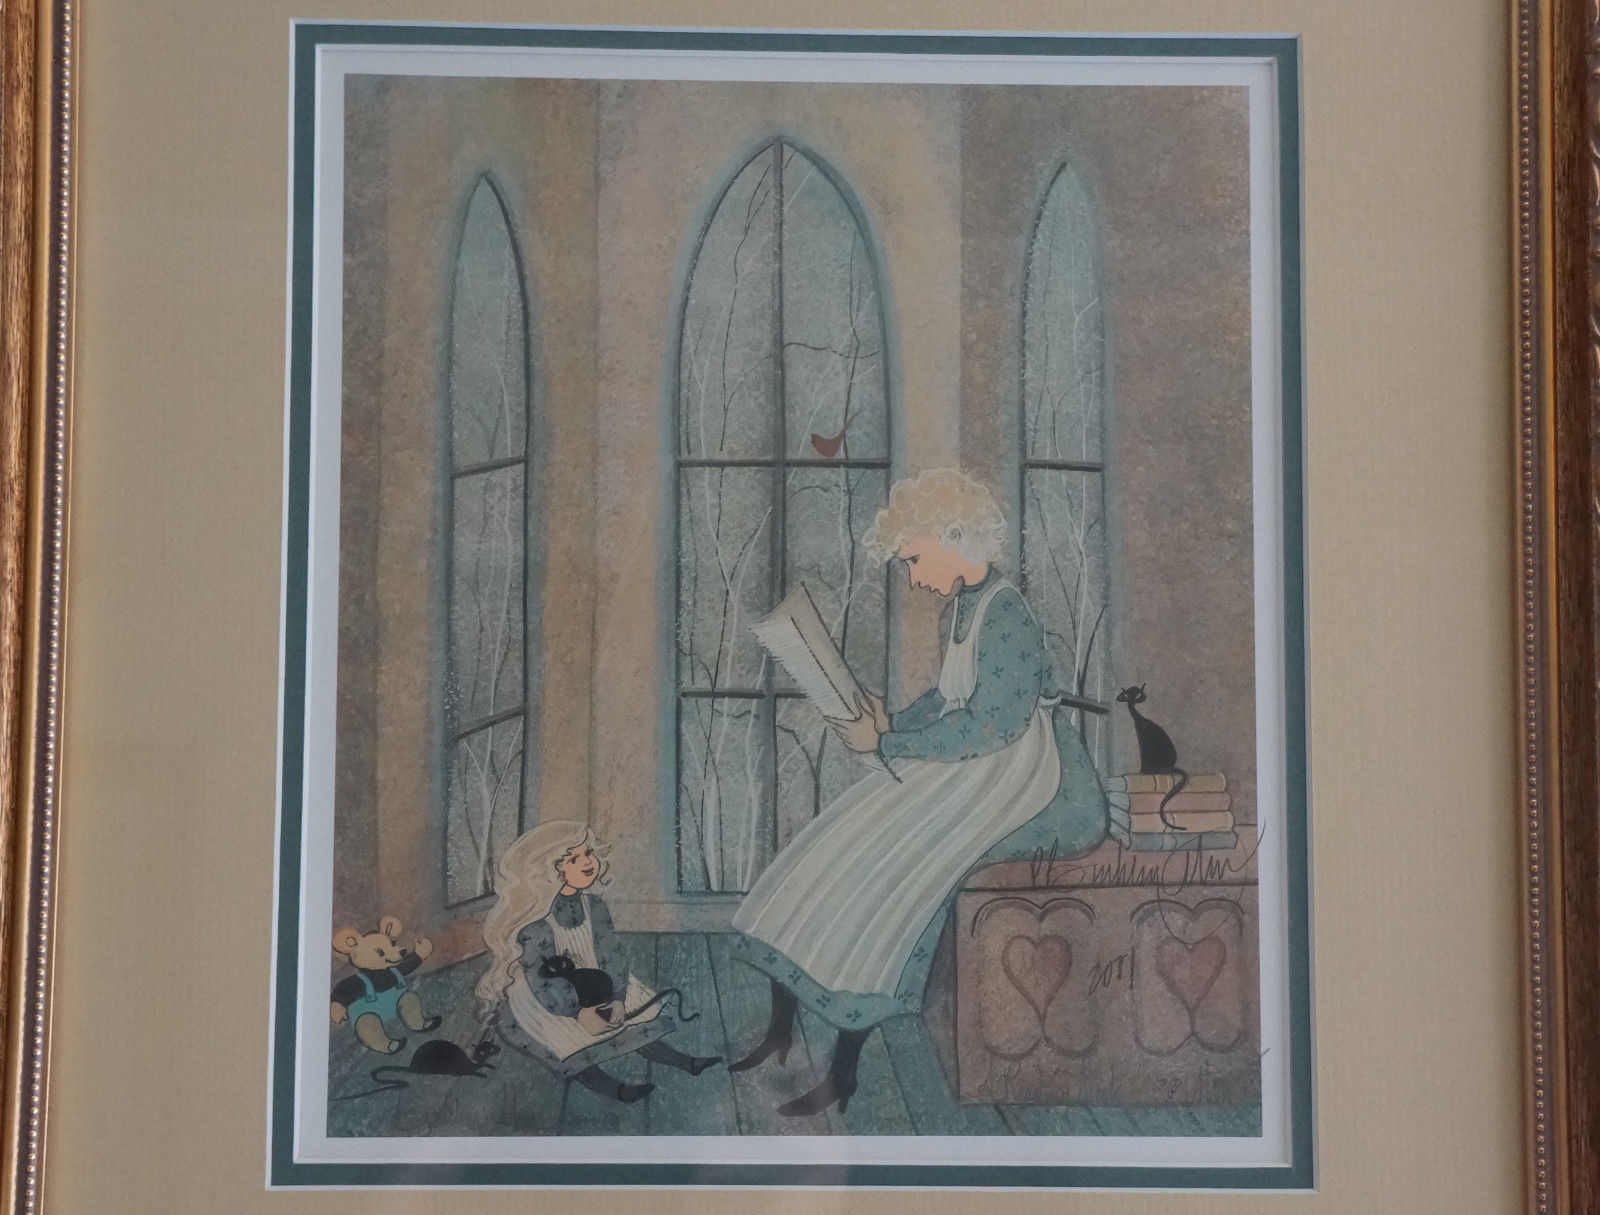 P Buckley Moss Framed Print A READING NOOK 16/1000 Issued 2001